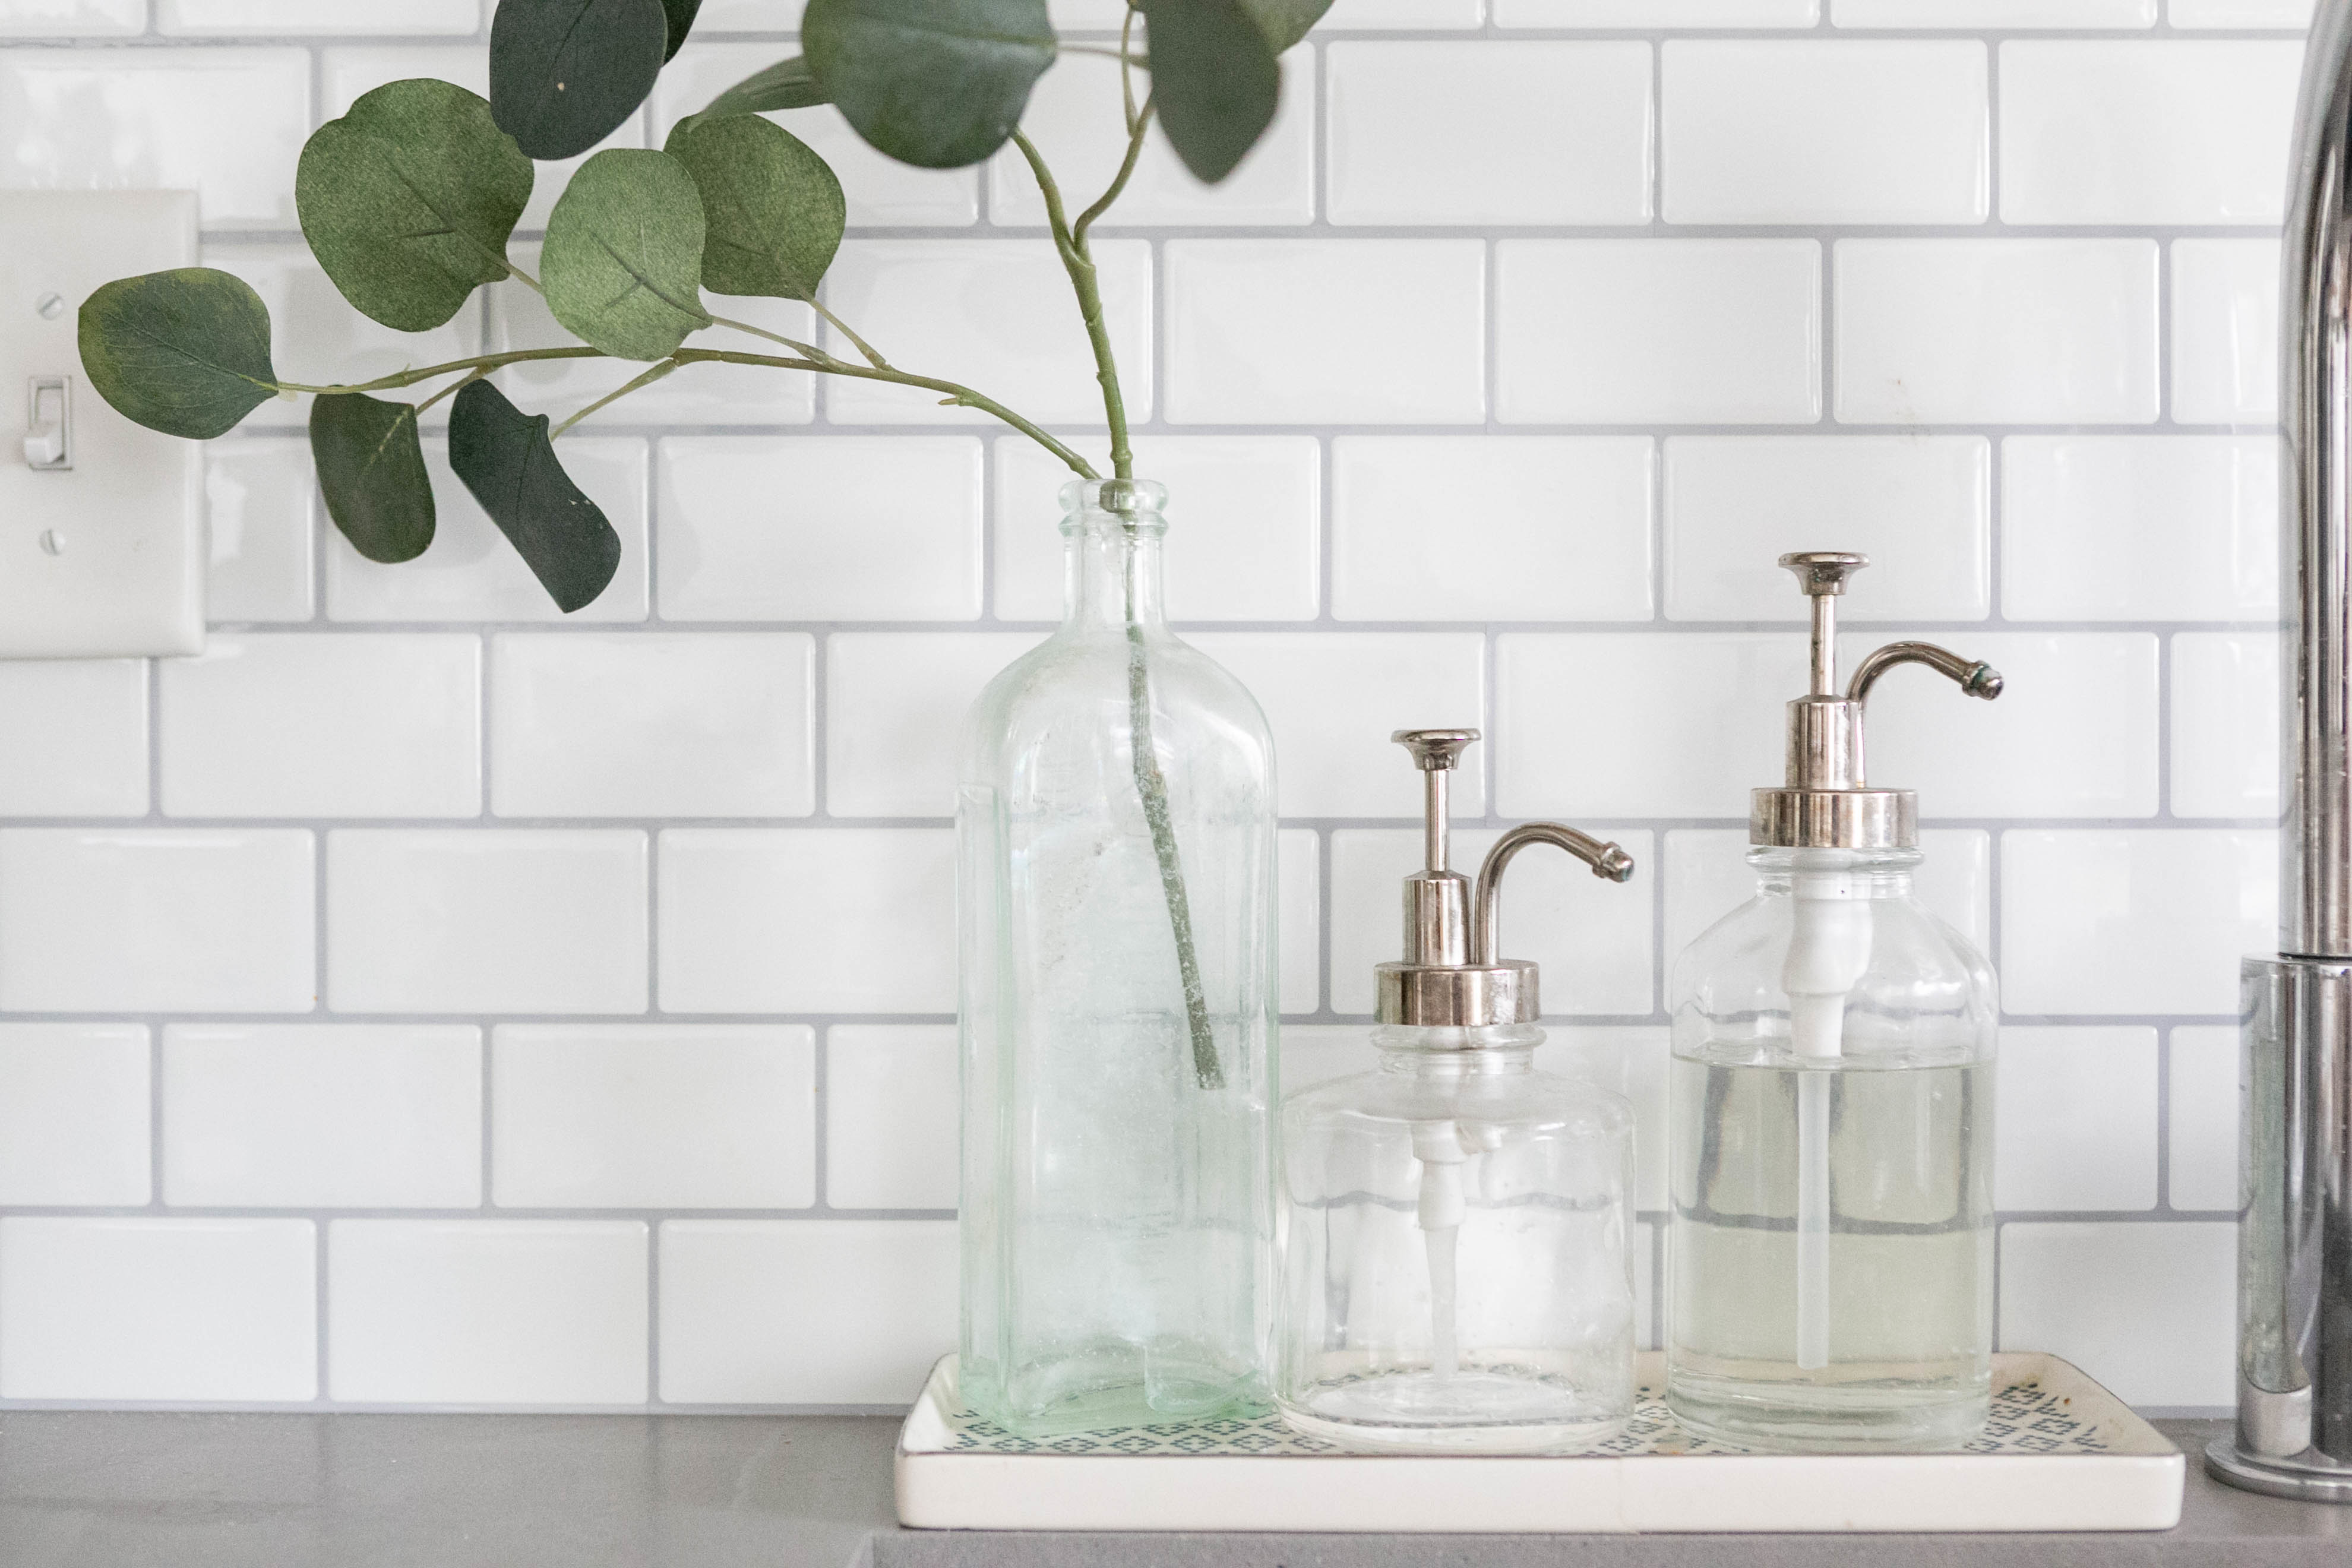 glass bottles with clear soap in a kitchen next to a clear jar with a green plant in it